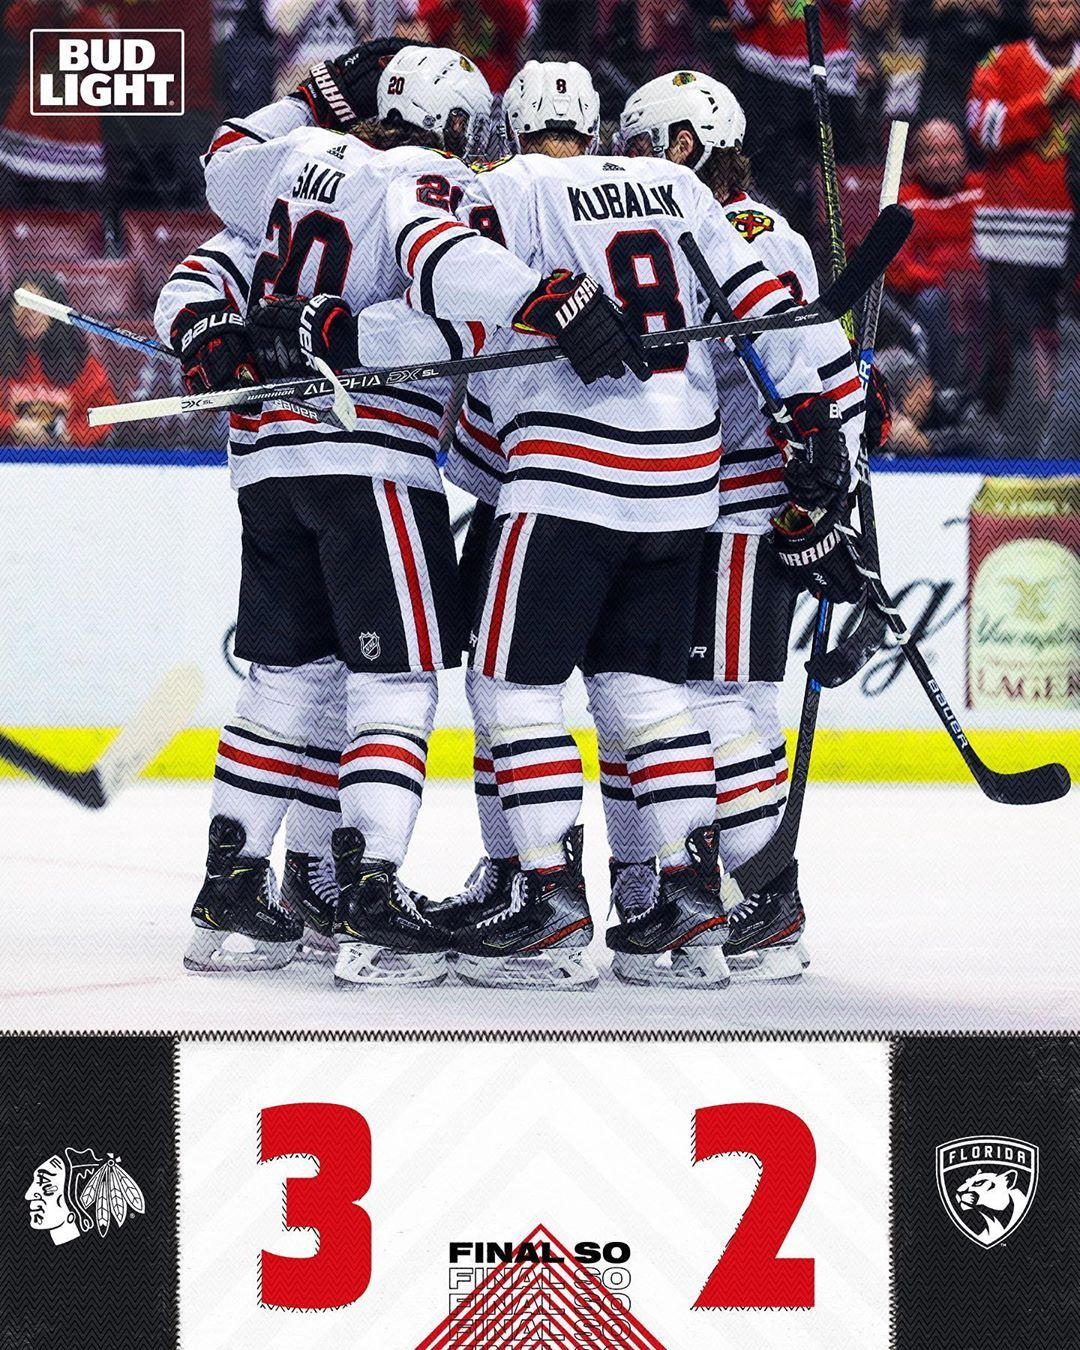 Chicago Blackhawks On Instagram Patrick Kane With The Shootout Winner Hawkswin In 2020 Chicago Blackhawks Hockey Chicago Blackhawks Detroit Red Wings Hockey